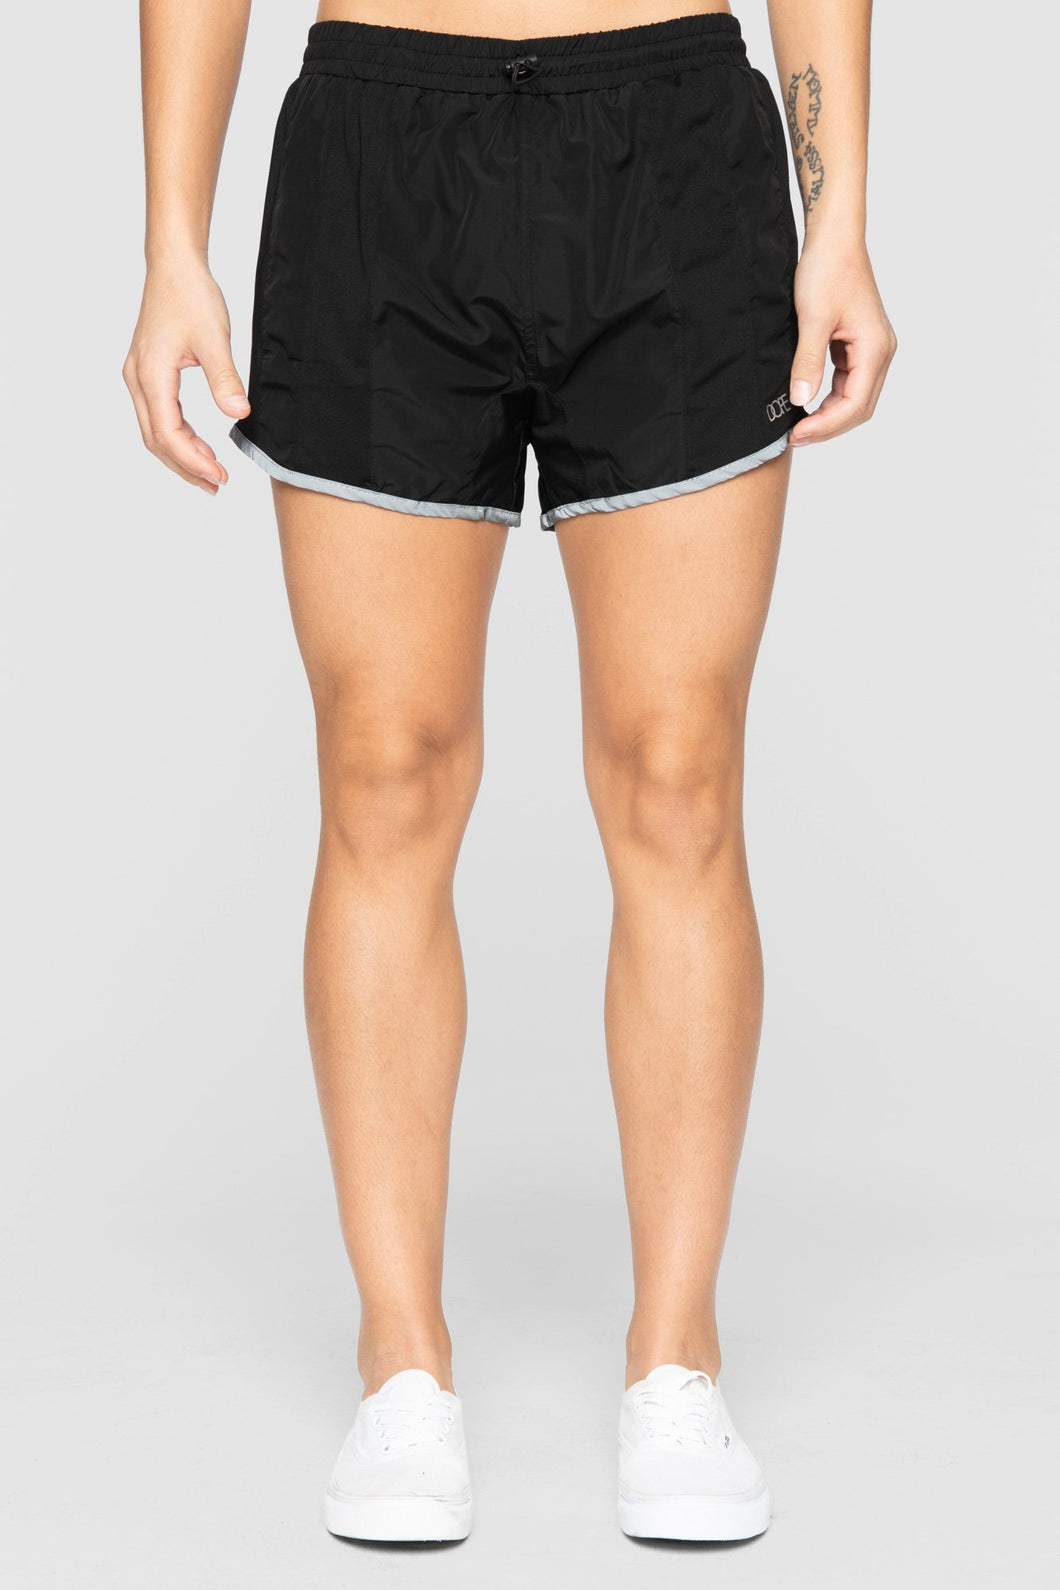 DOPE Reflective Running Shorts #Black